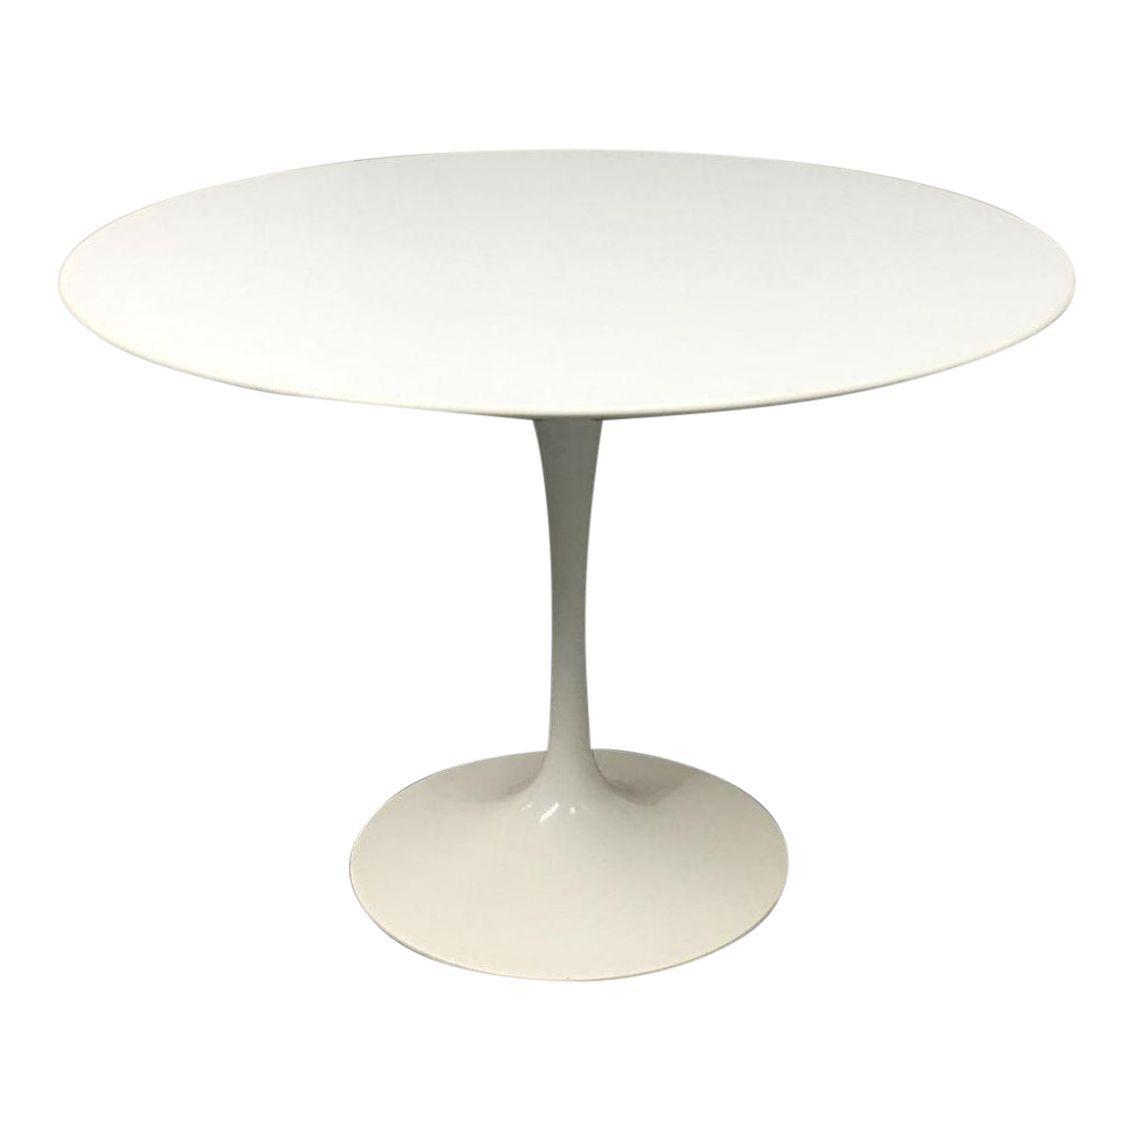 Knoll Saarinen Round Dining Table. Original Price: $2,190.00   Design Plus  Gallery